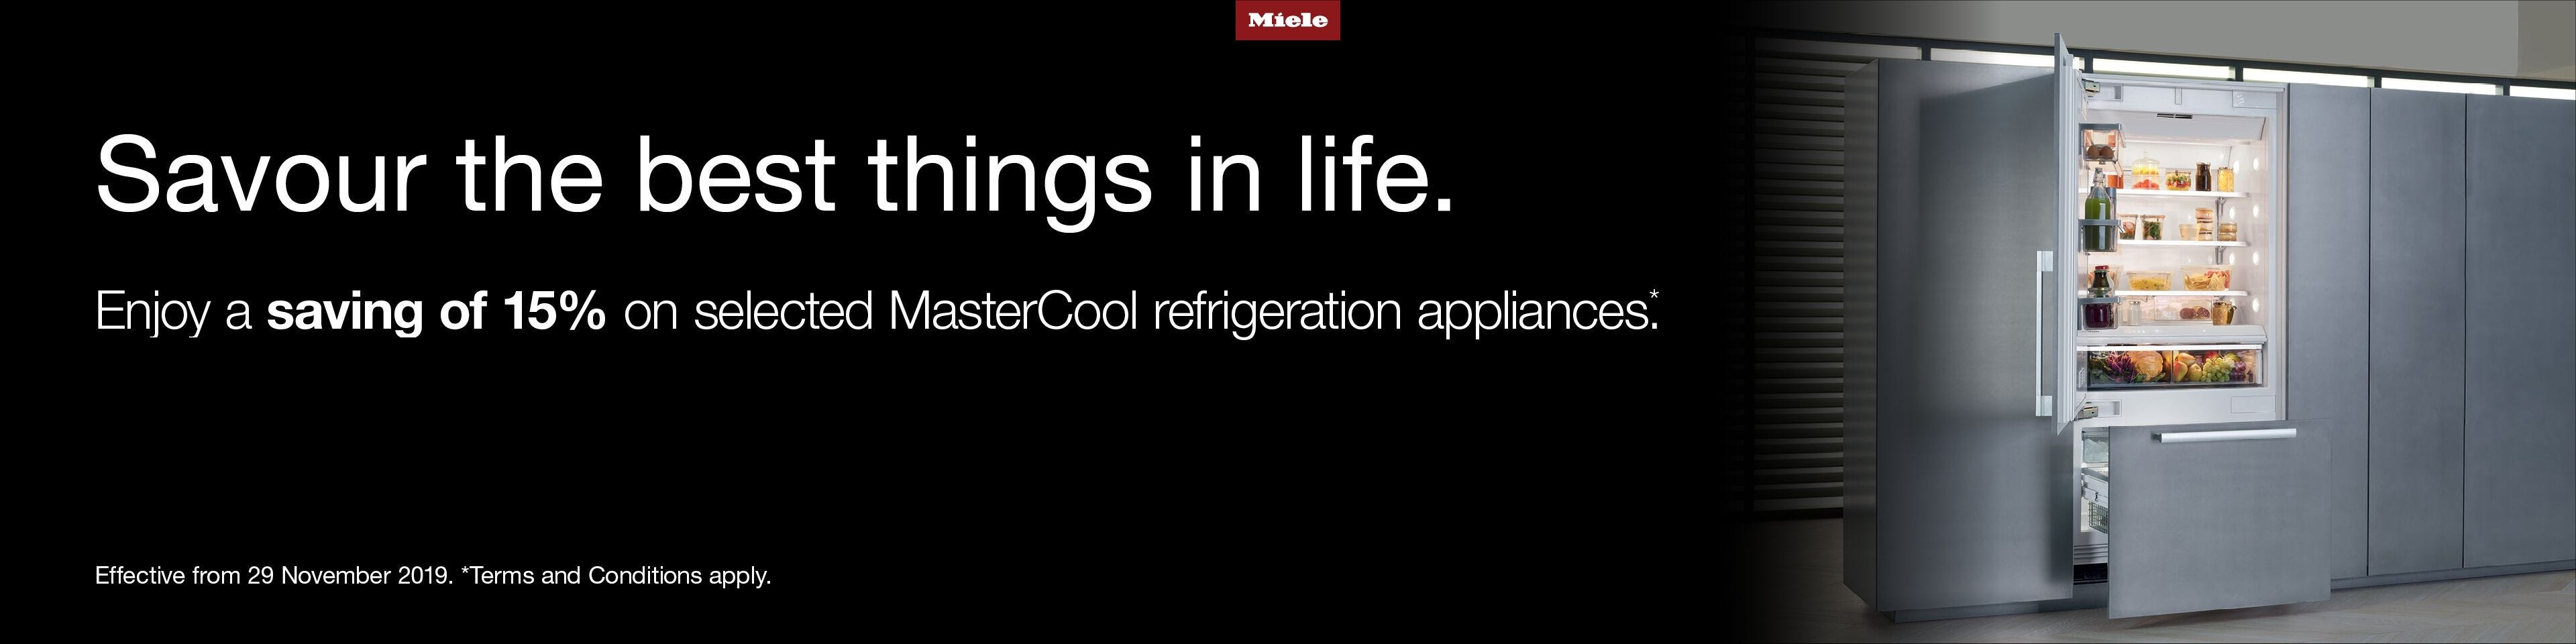 Savour the best things in life. Enjoy a saving of 15% on selected MasterCool refrigeration appliances. Effective from 29 November 2019. Terms and Conditions Apply.